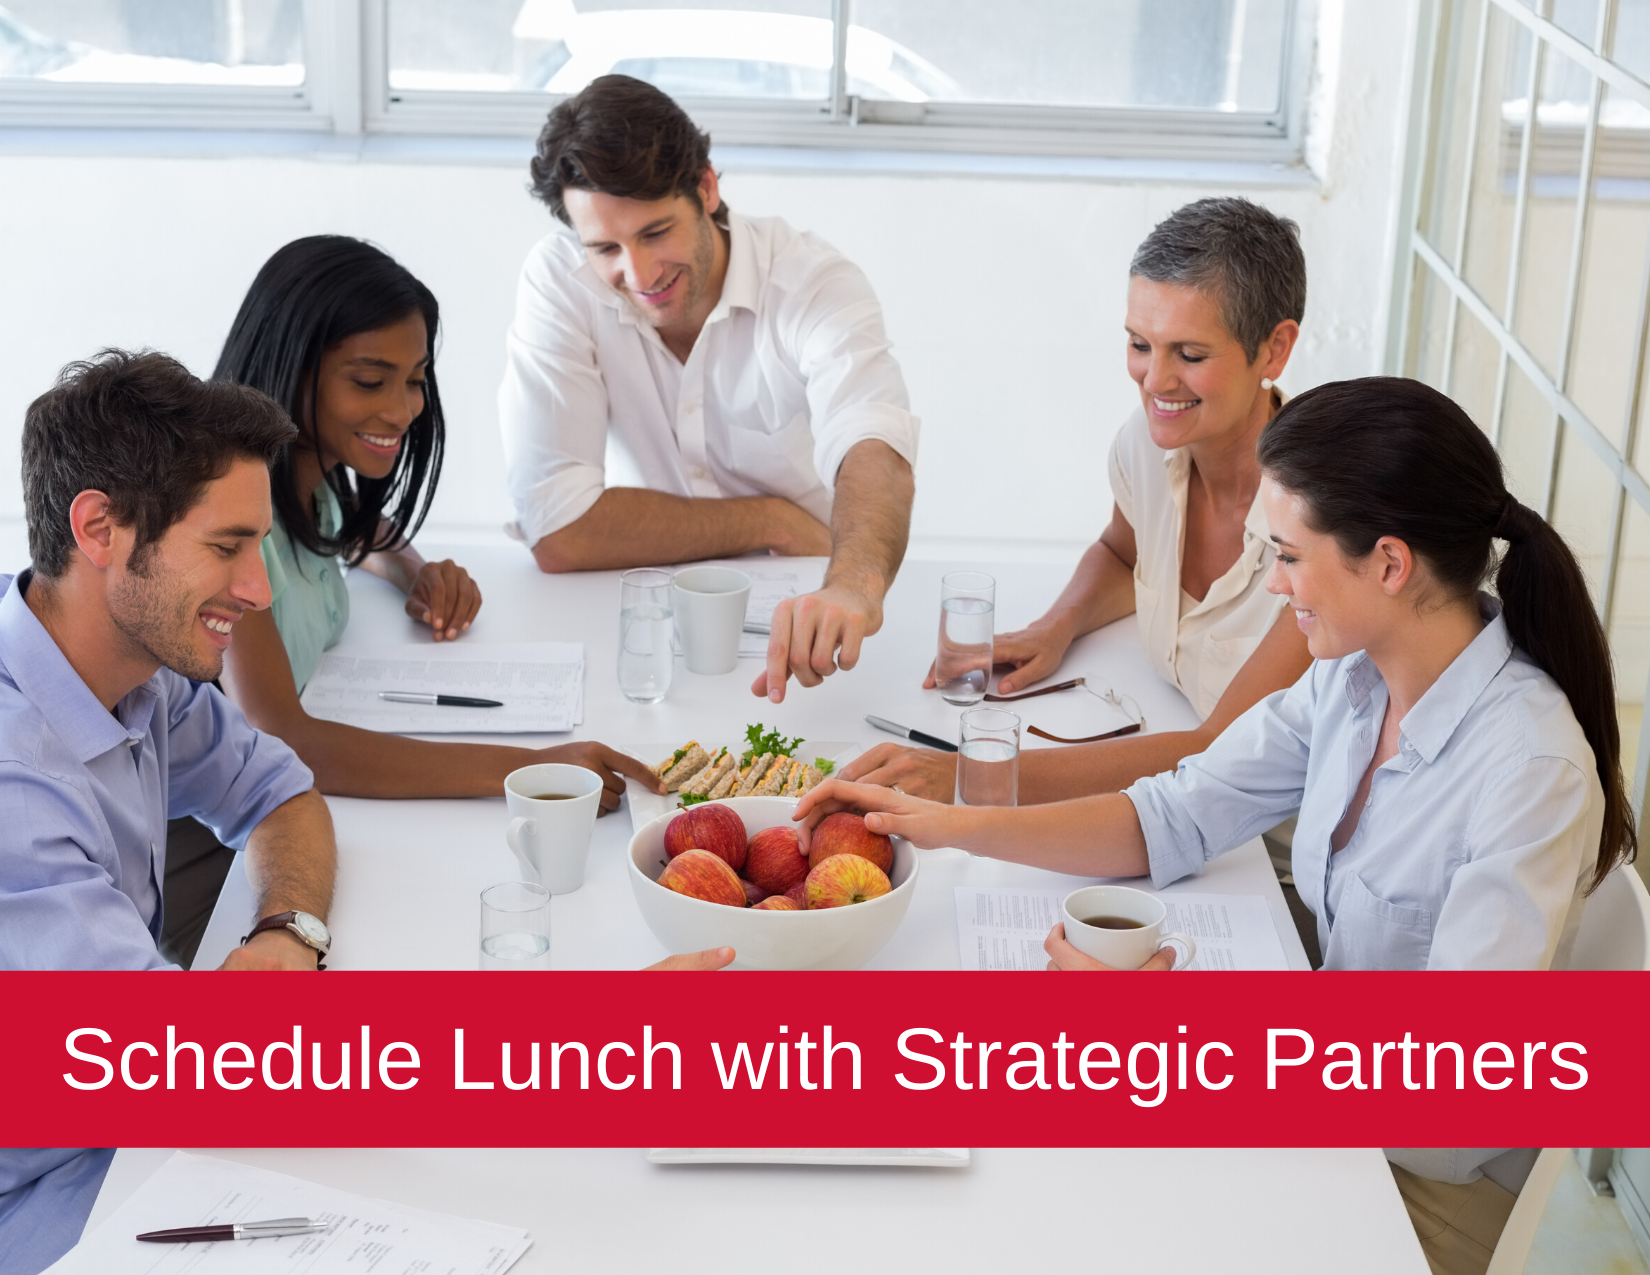 schedule lunch with strategic partners - people eating